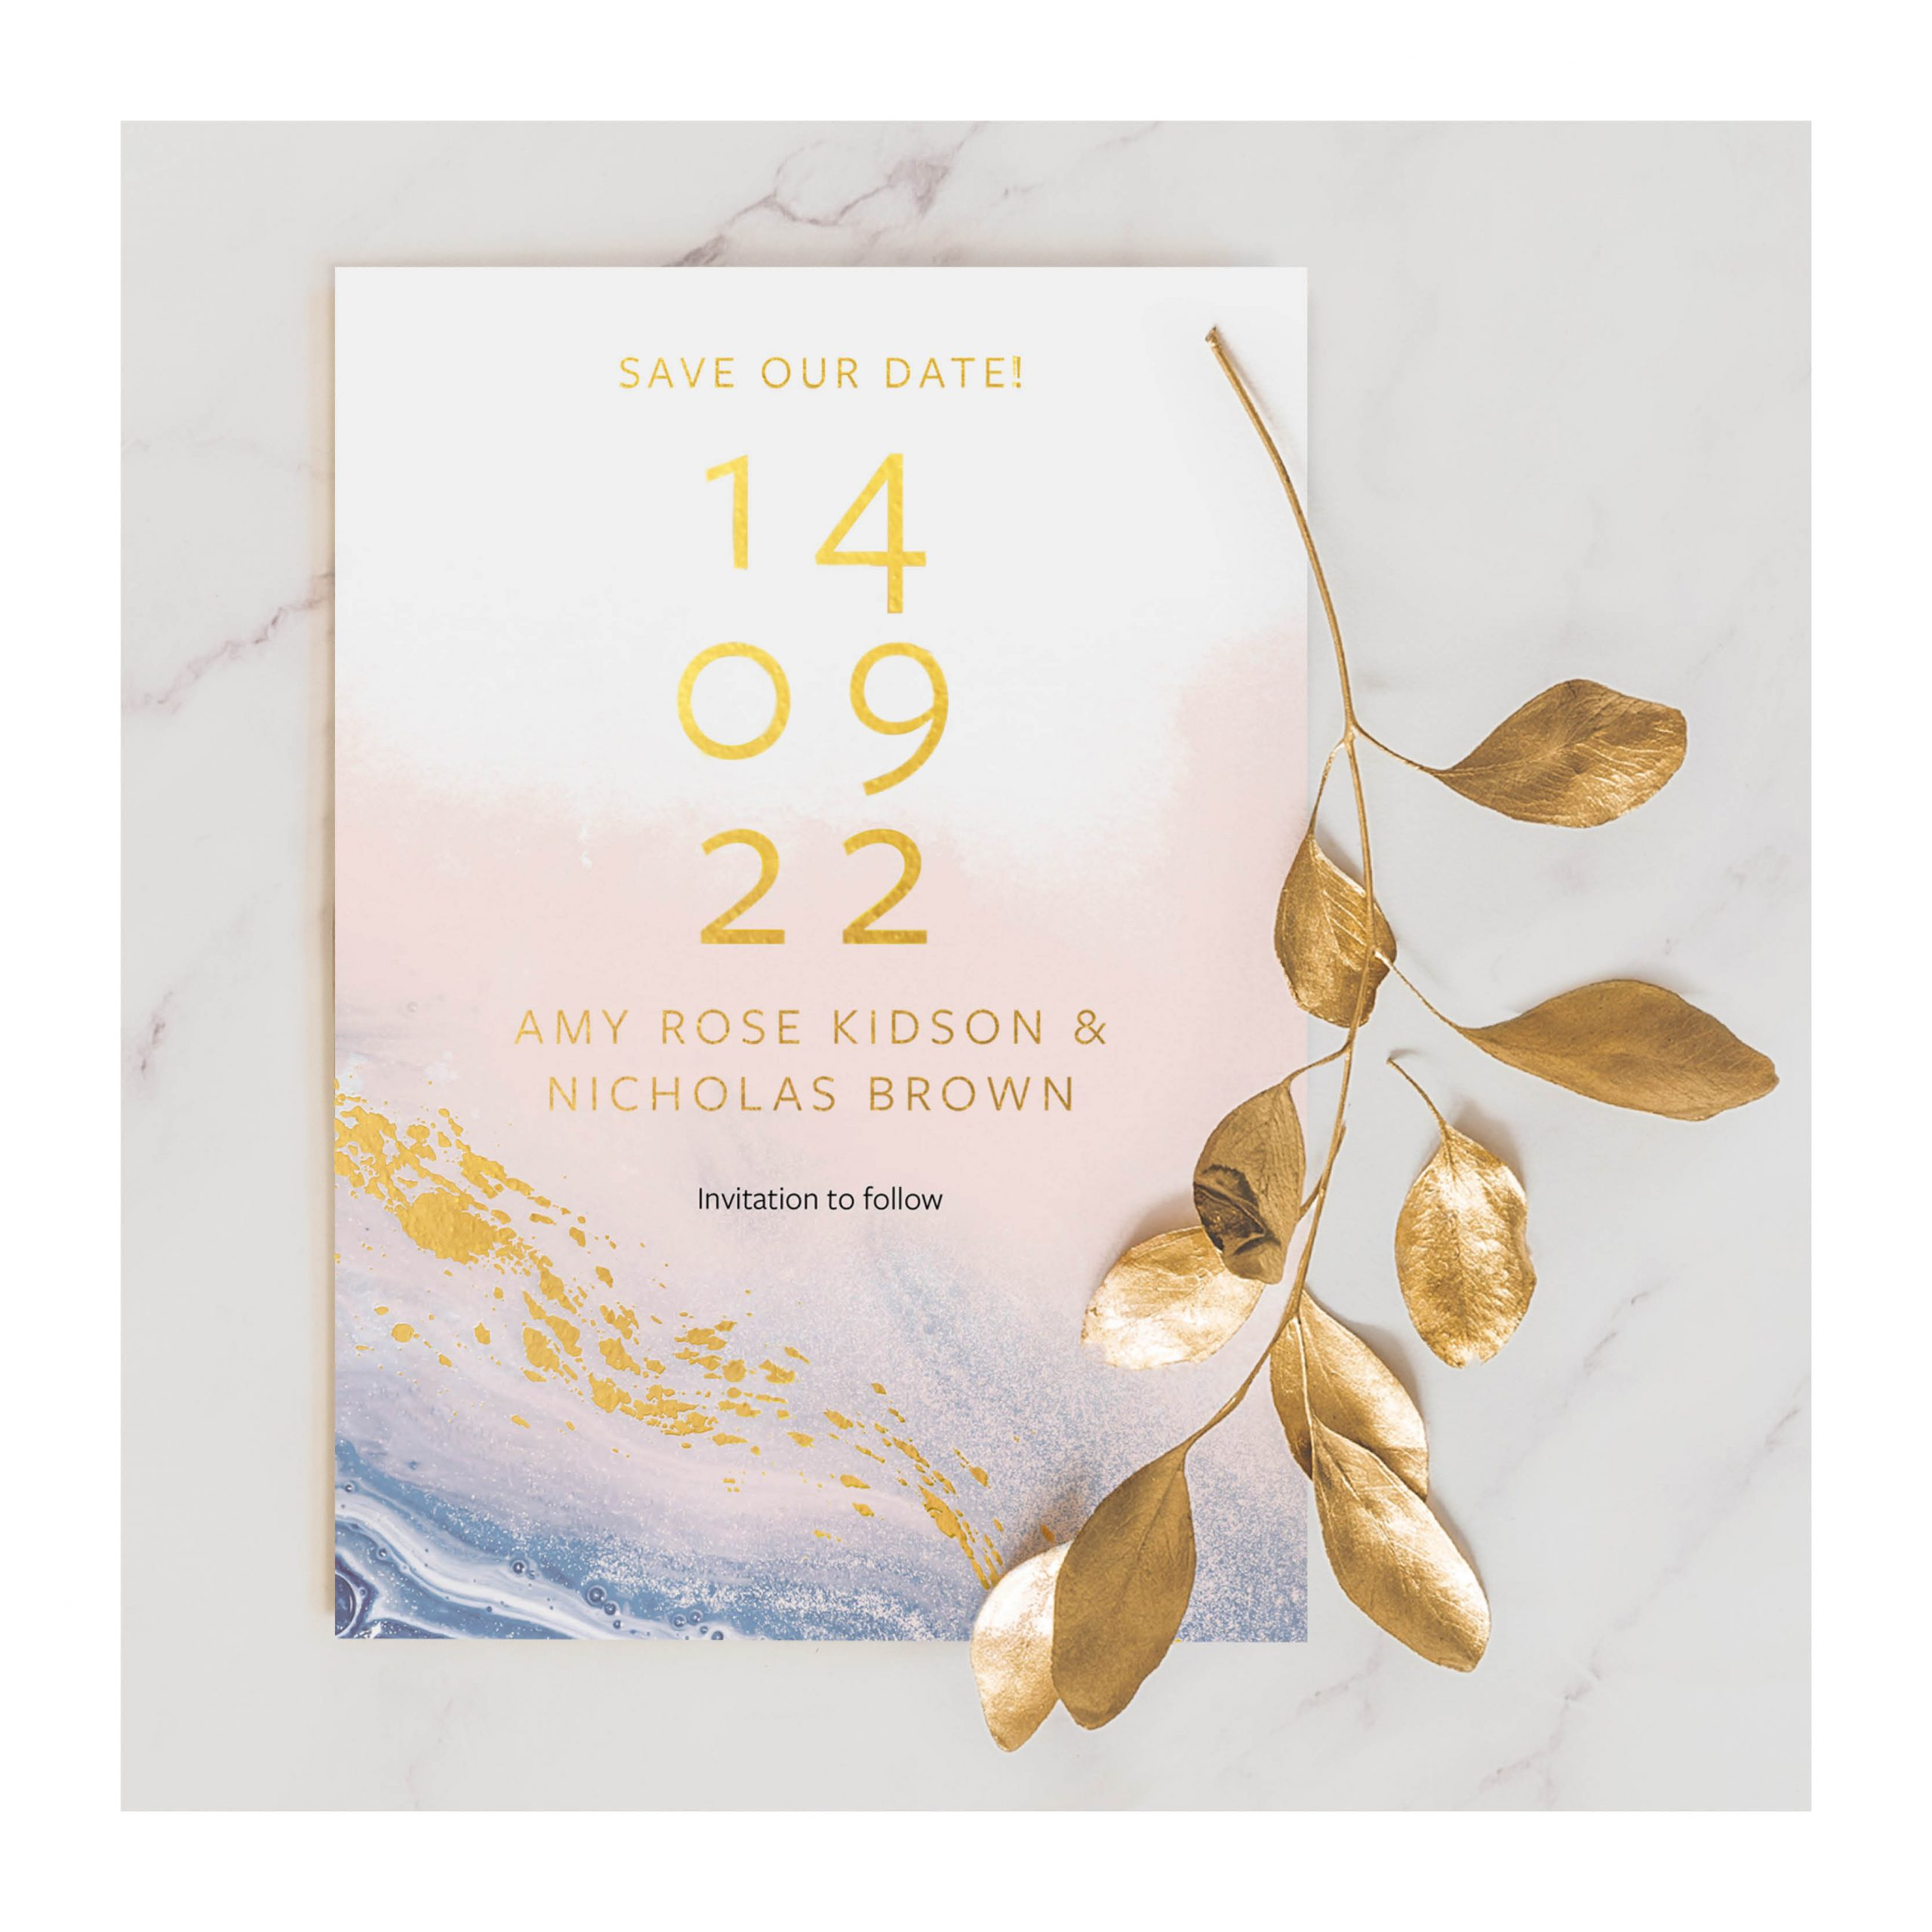 Marble Save the date photo with leaf